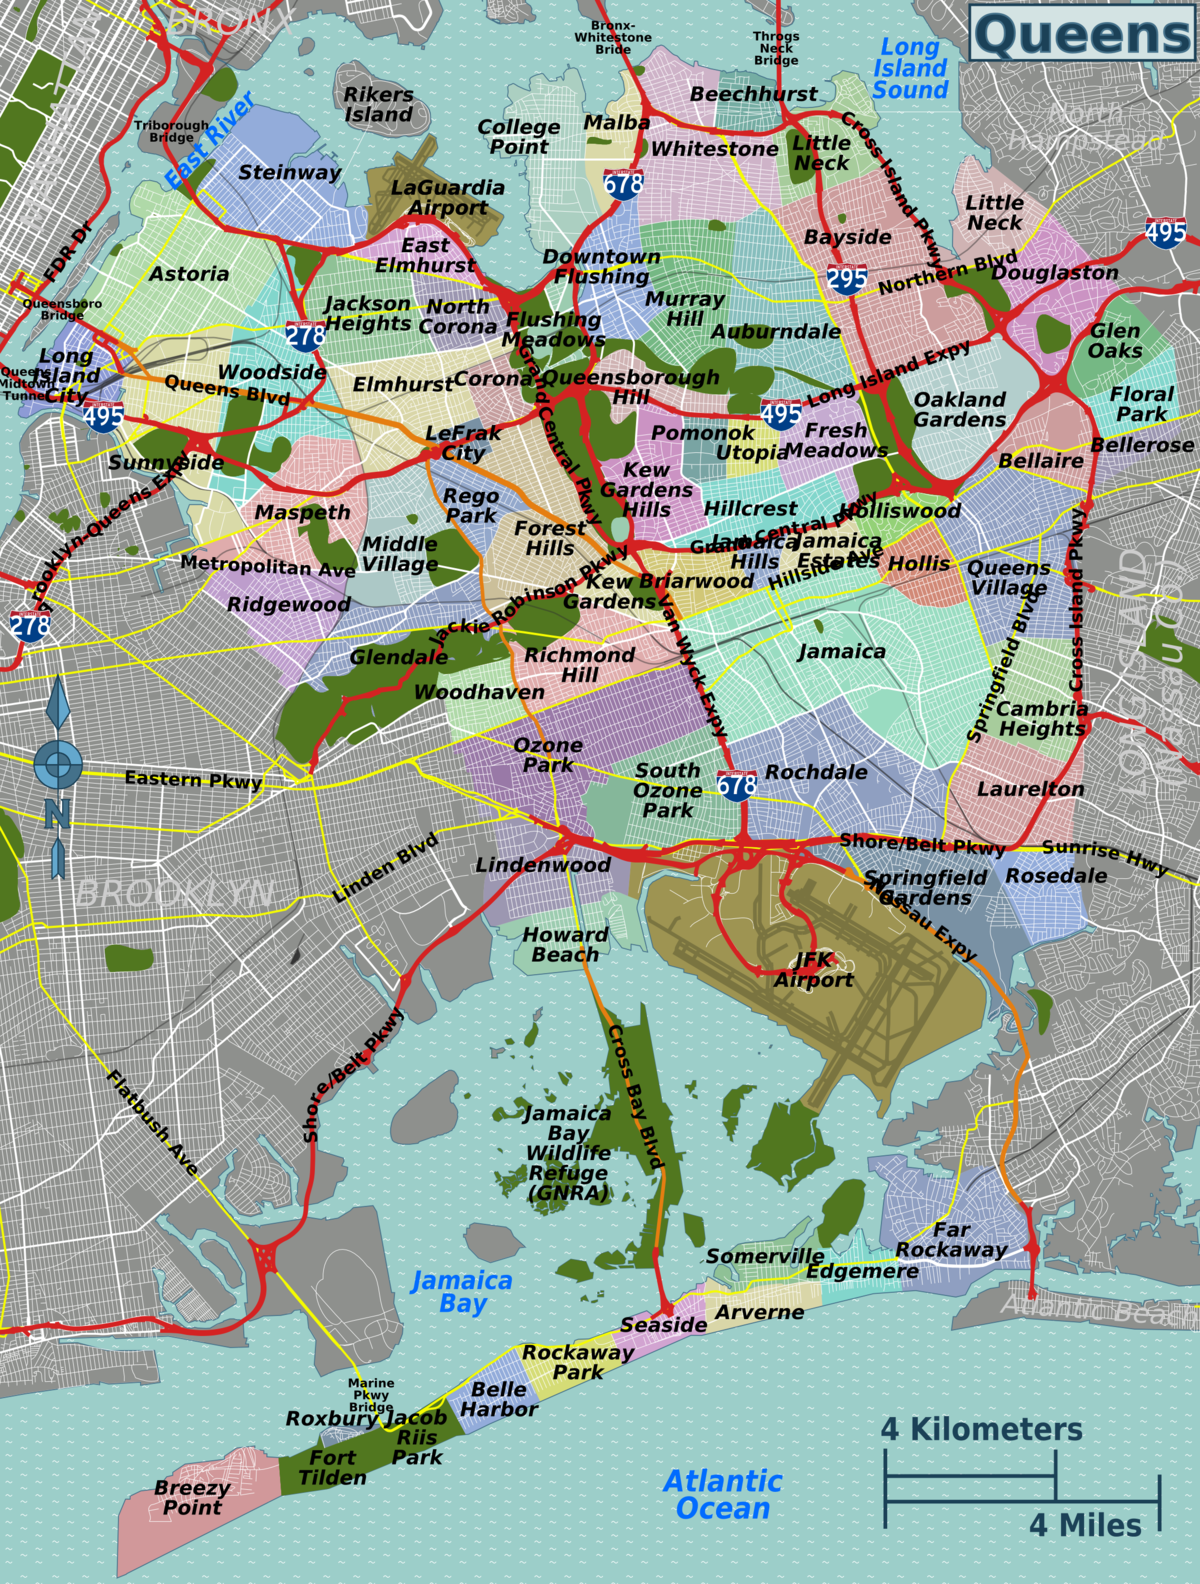 washington dc zip code map with List Of Queens Neighborhoods on Nagpur City Map besides Phoenix Map as well Great Falls further Map Of Washington State also List of Queens neighborhoods.